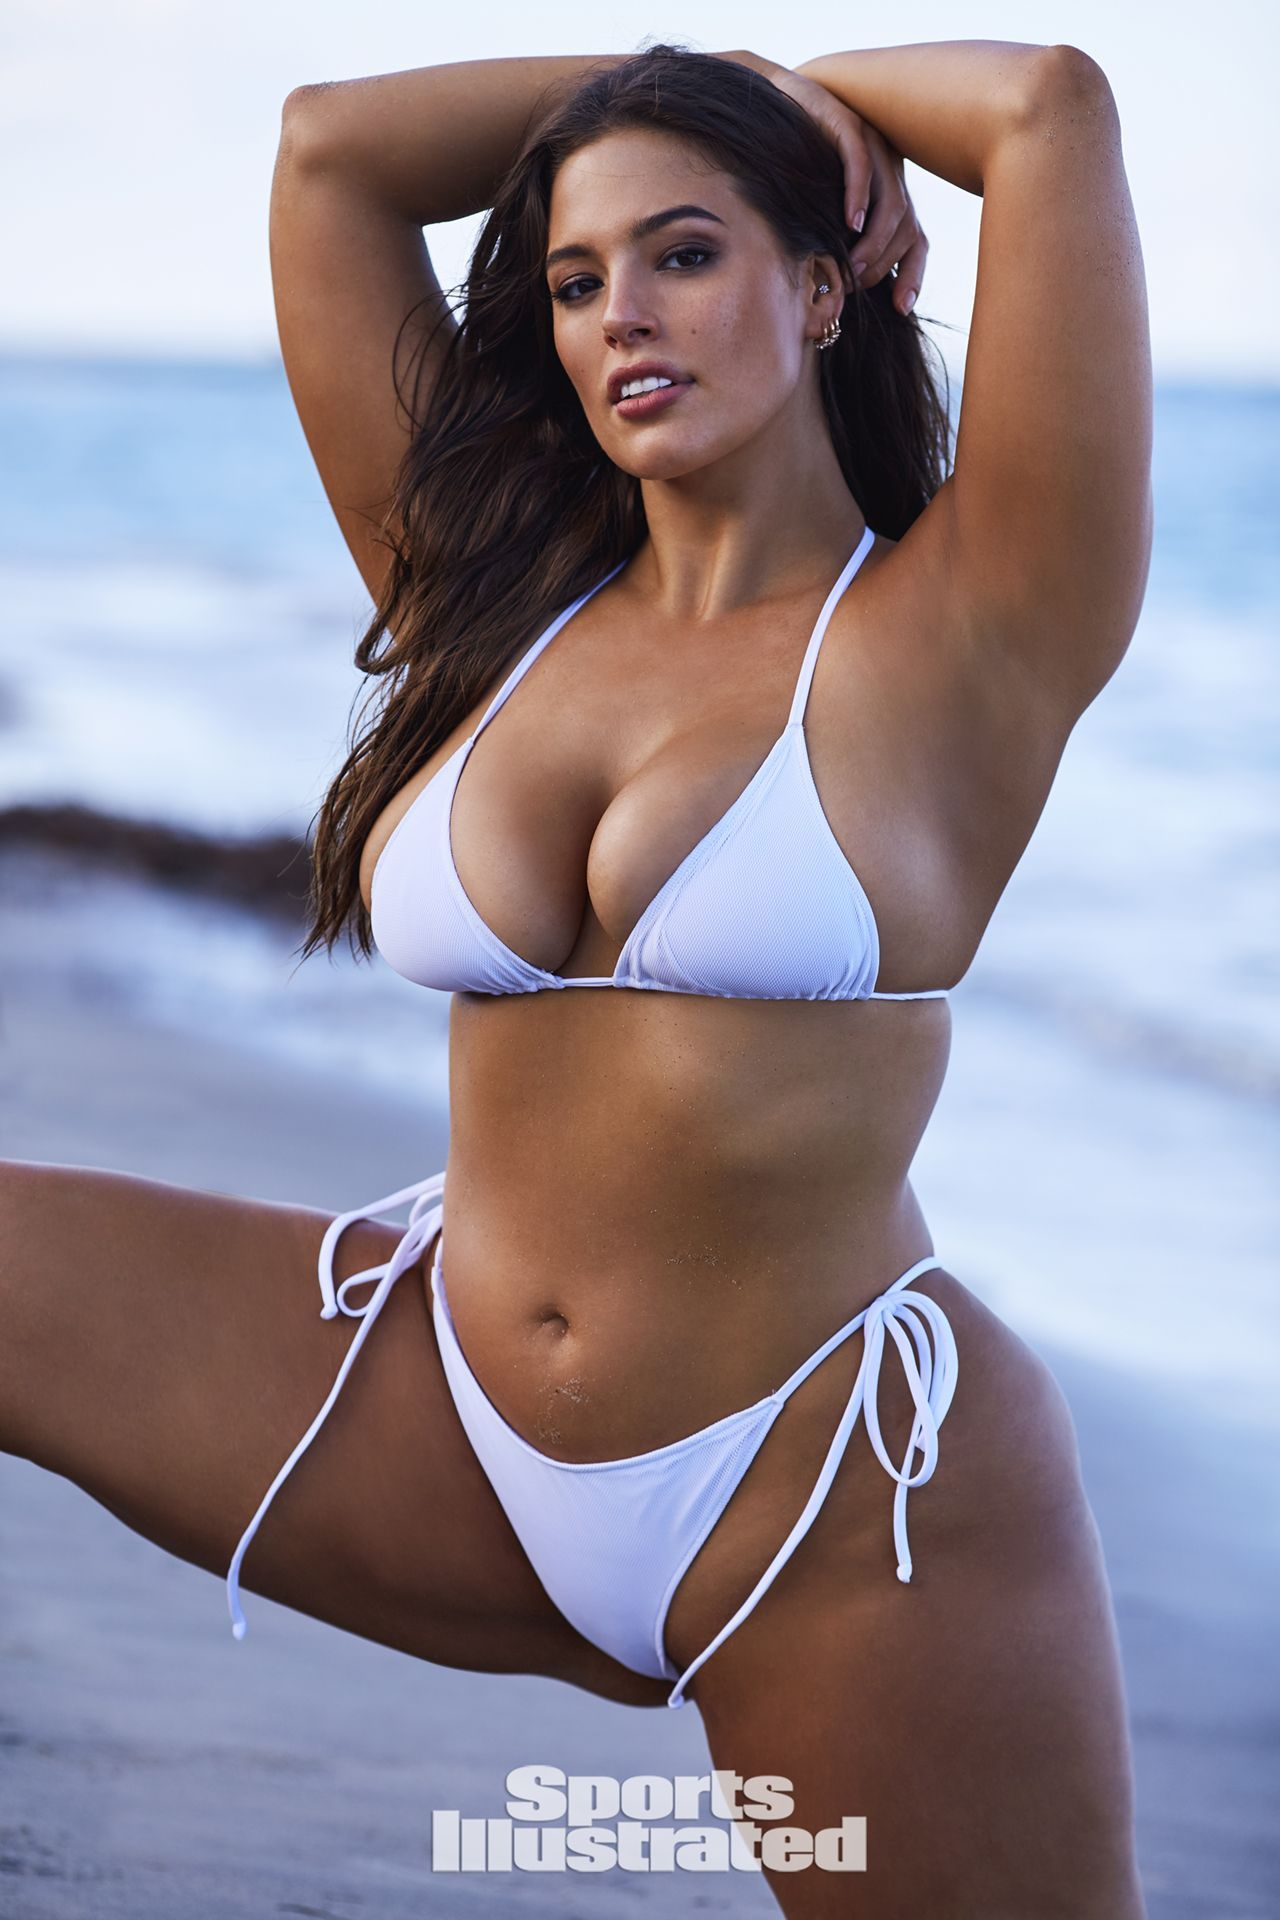 Fox reccomend Plus size female topless bikini models